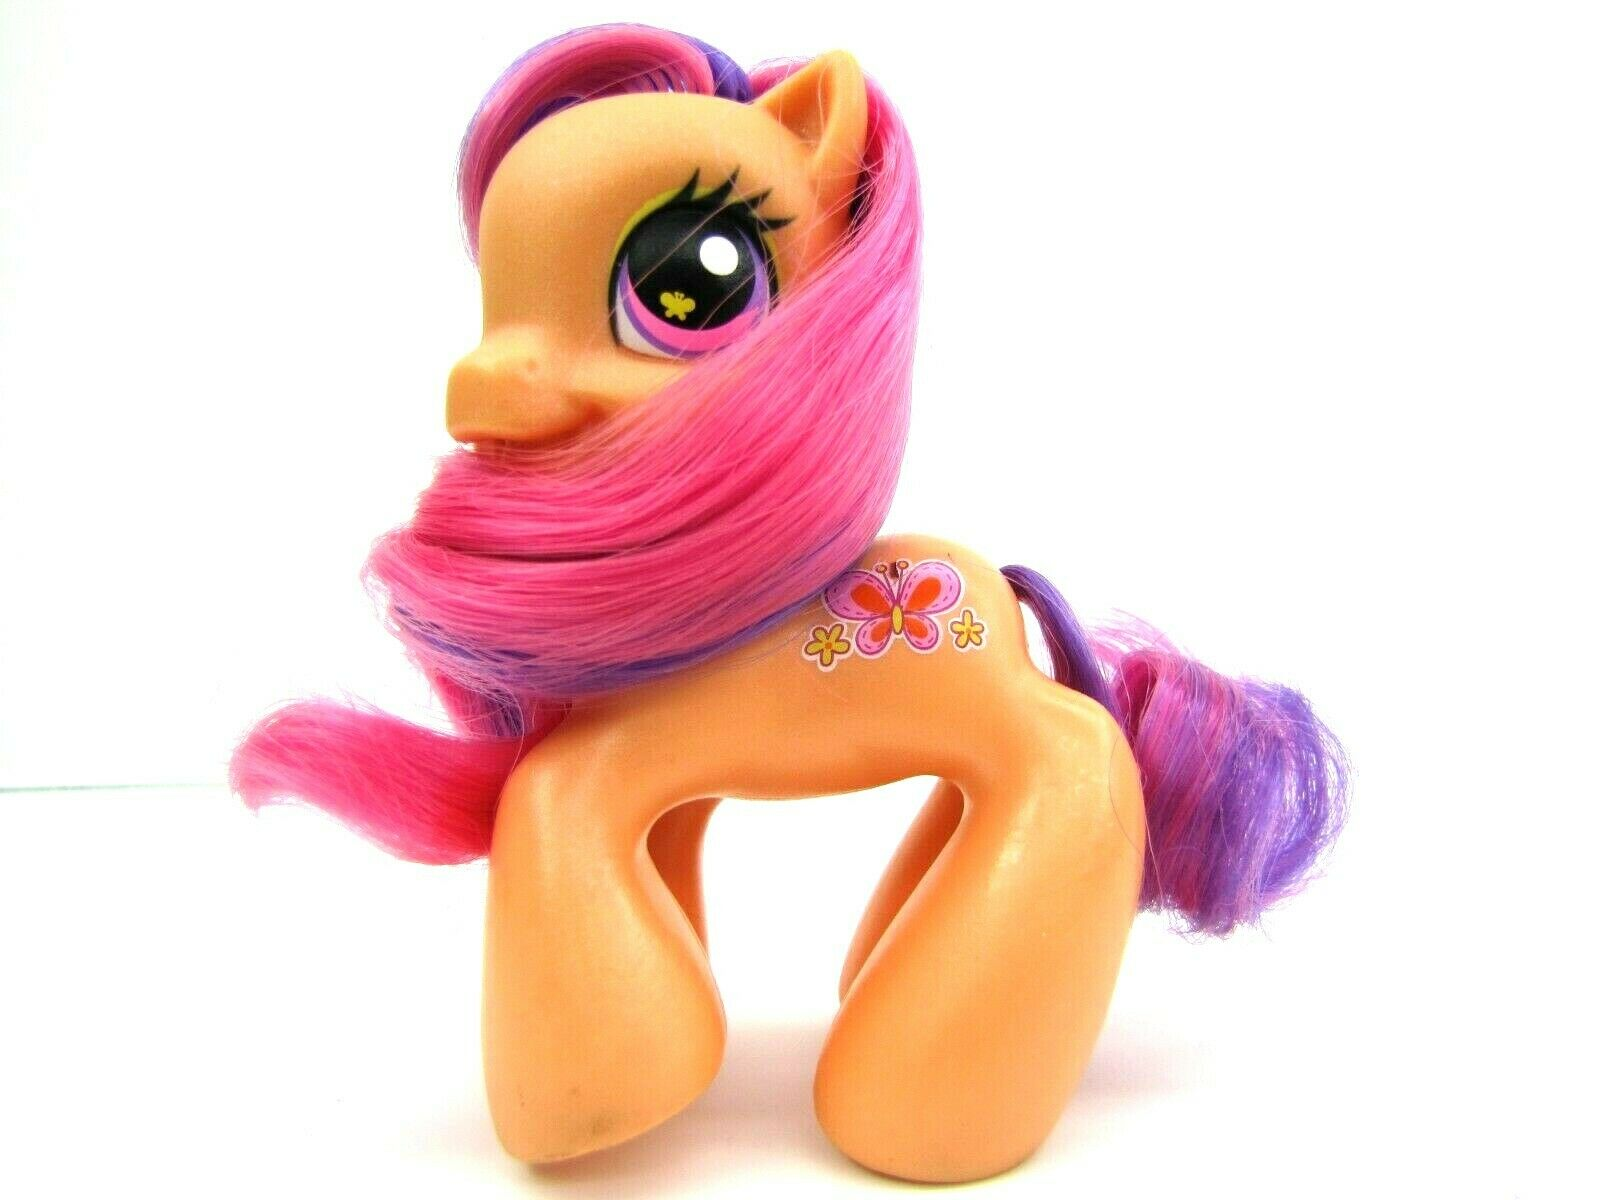 2009 My Little Pony Generation 3 5 Single Pack Scootaloo Very Nice My Generation Toys Do you like this video? my generation toys